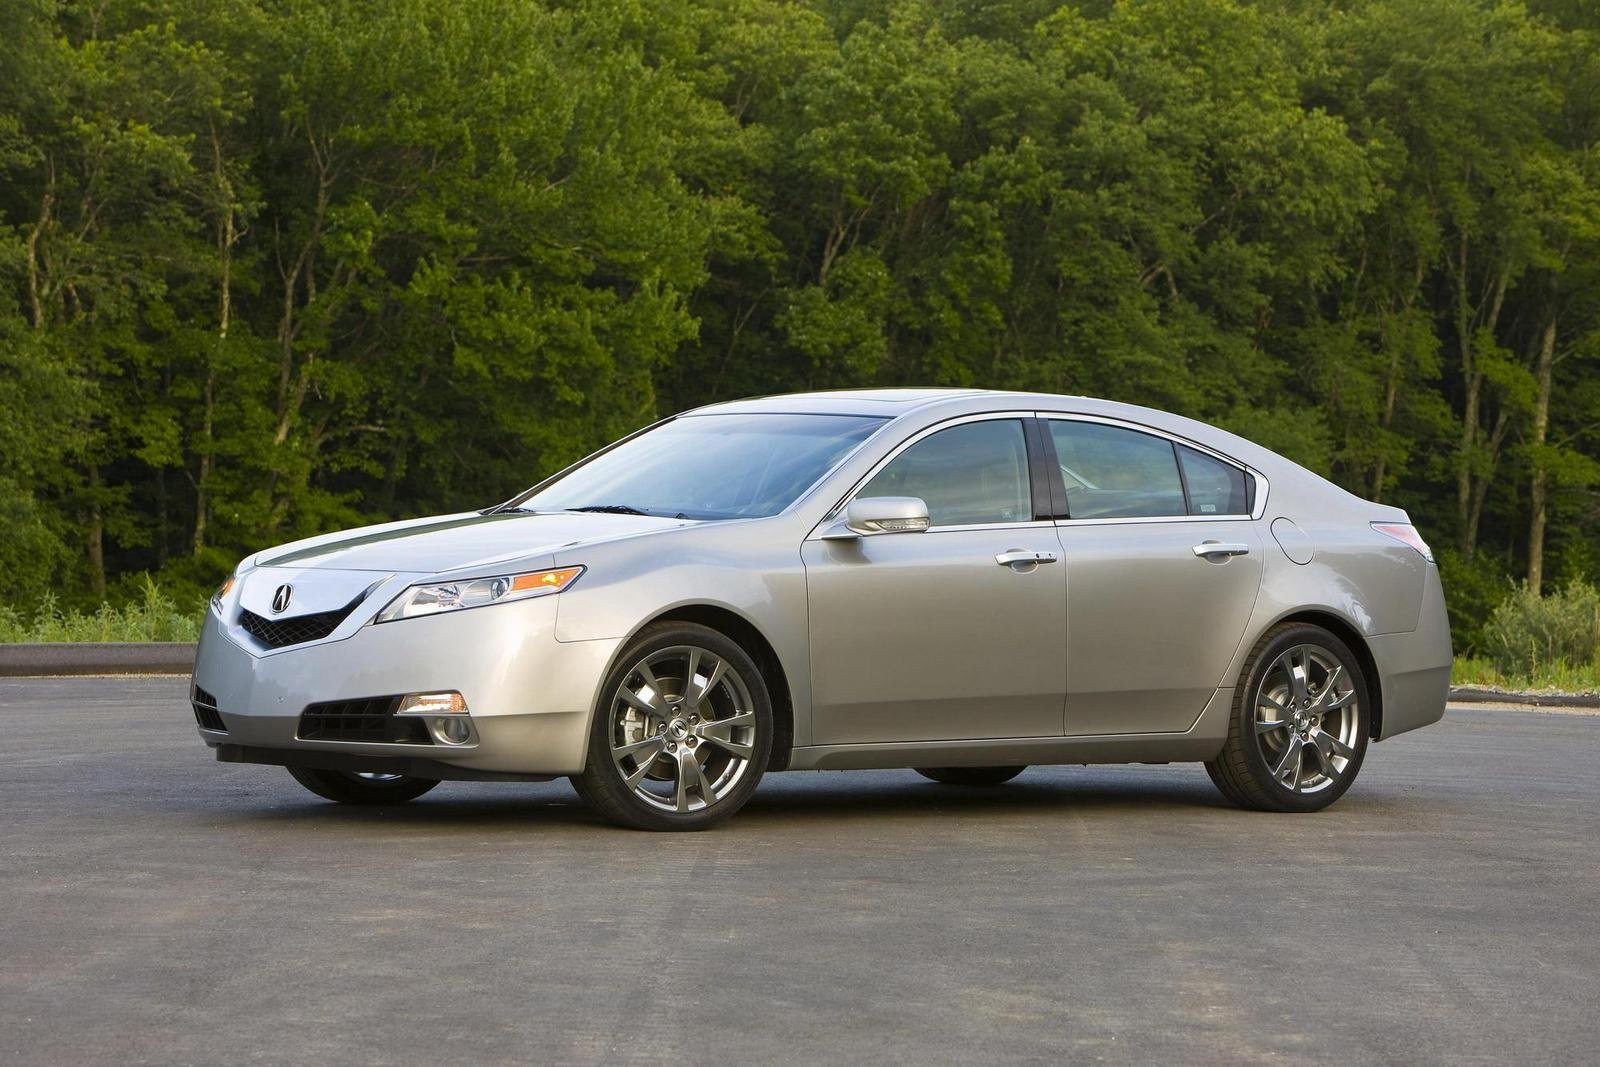 2010 acura tl picture 326171 car review top speed. Black Bedroom Furniture Sets. Home Design Ideas